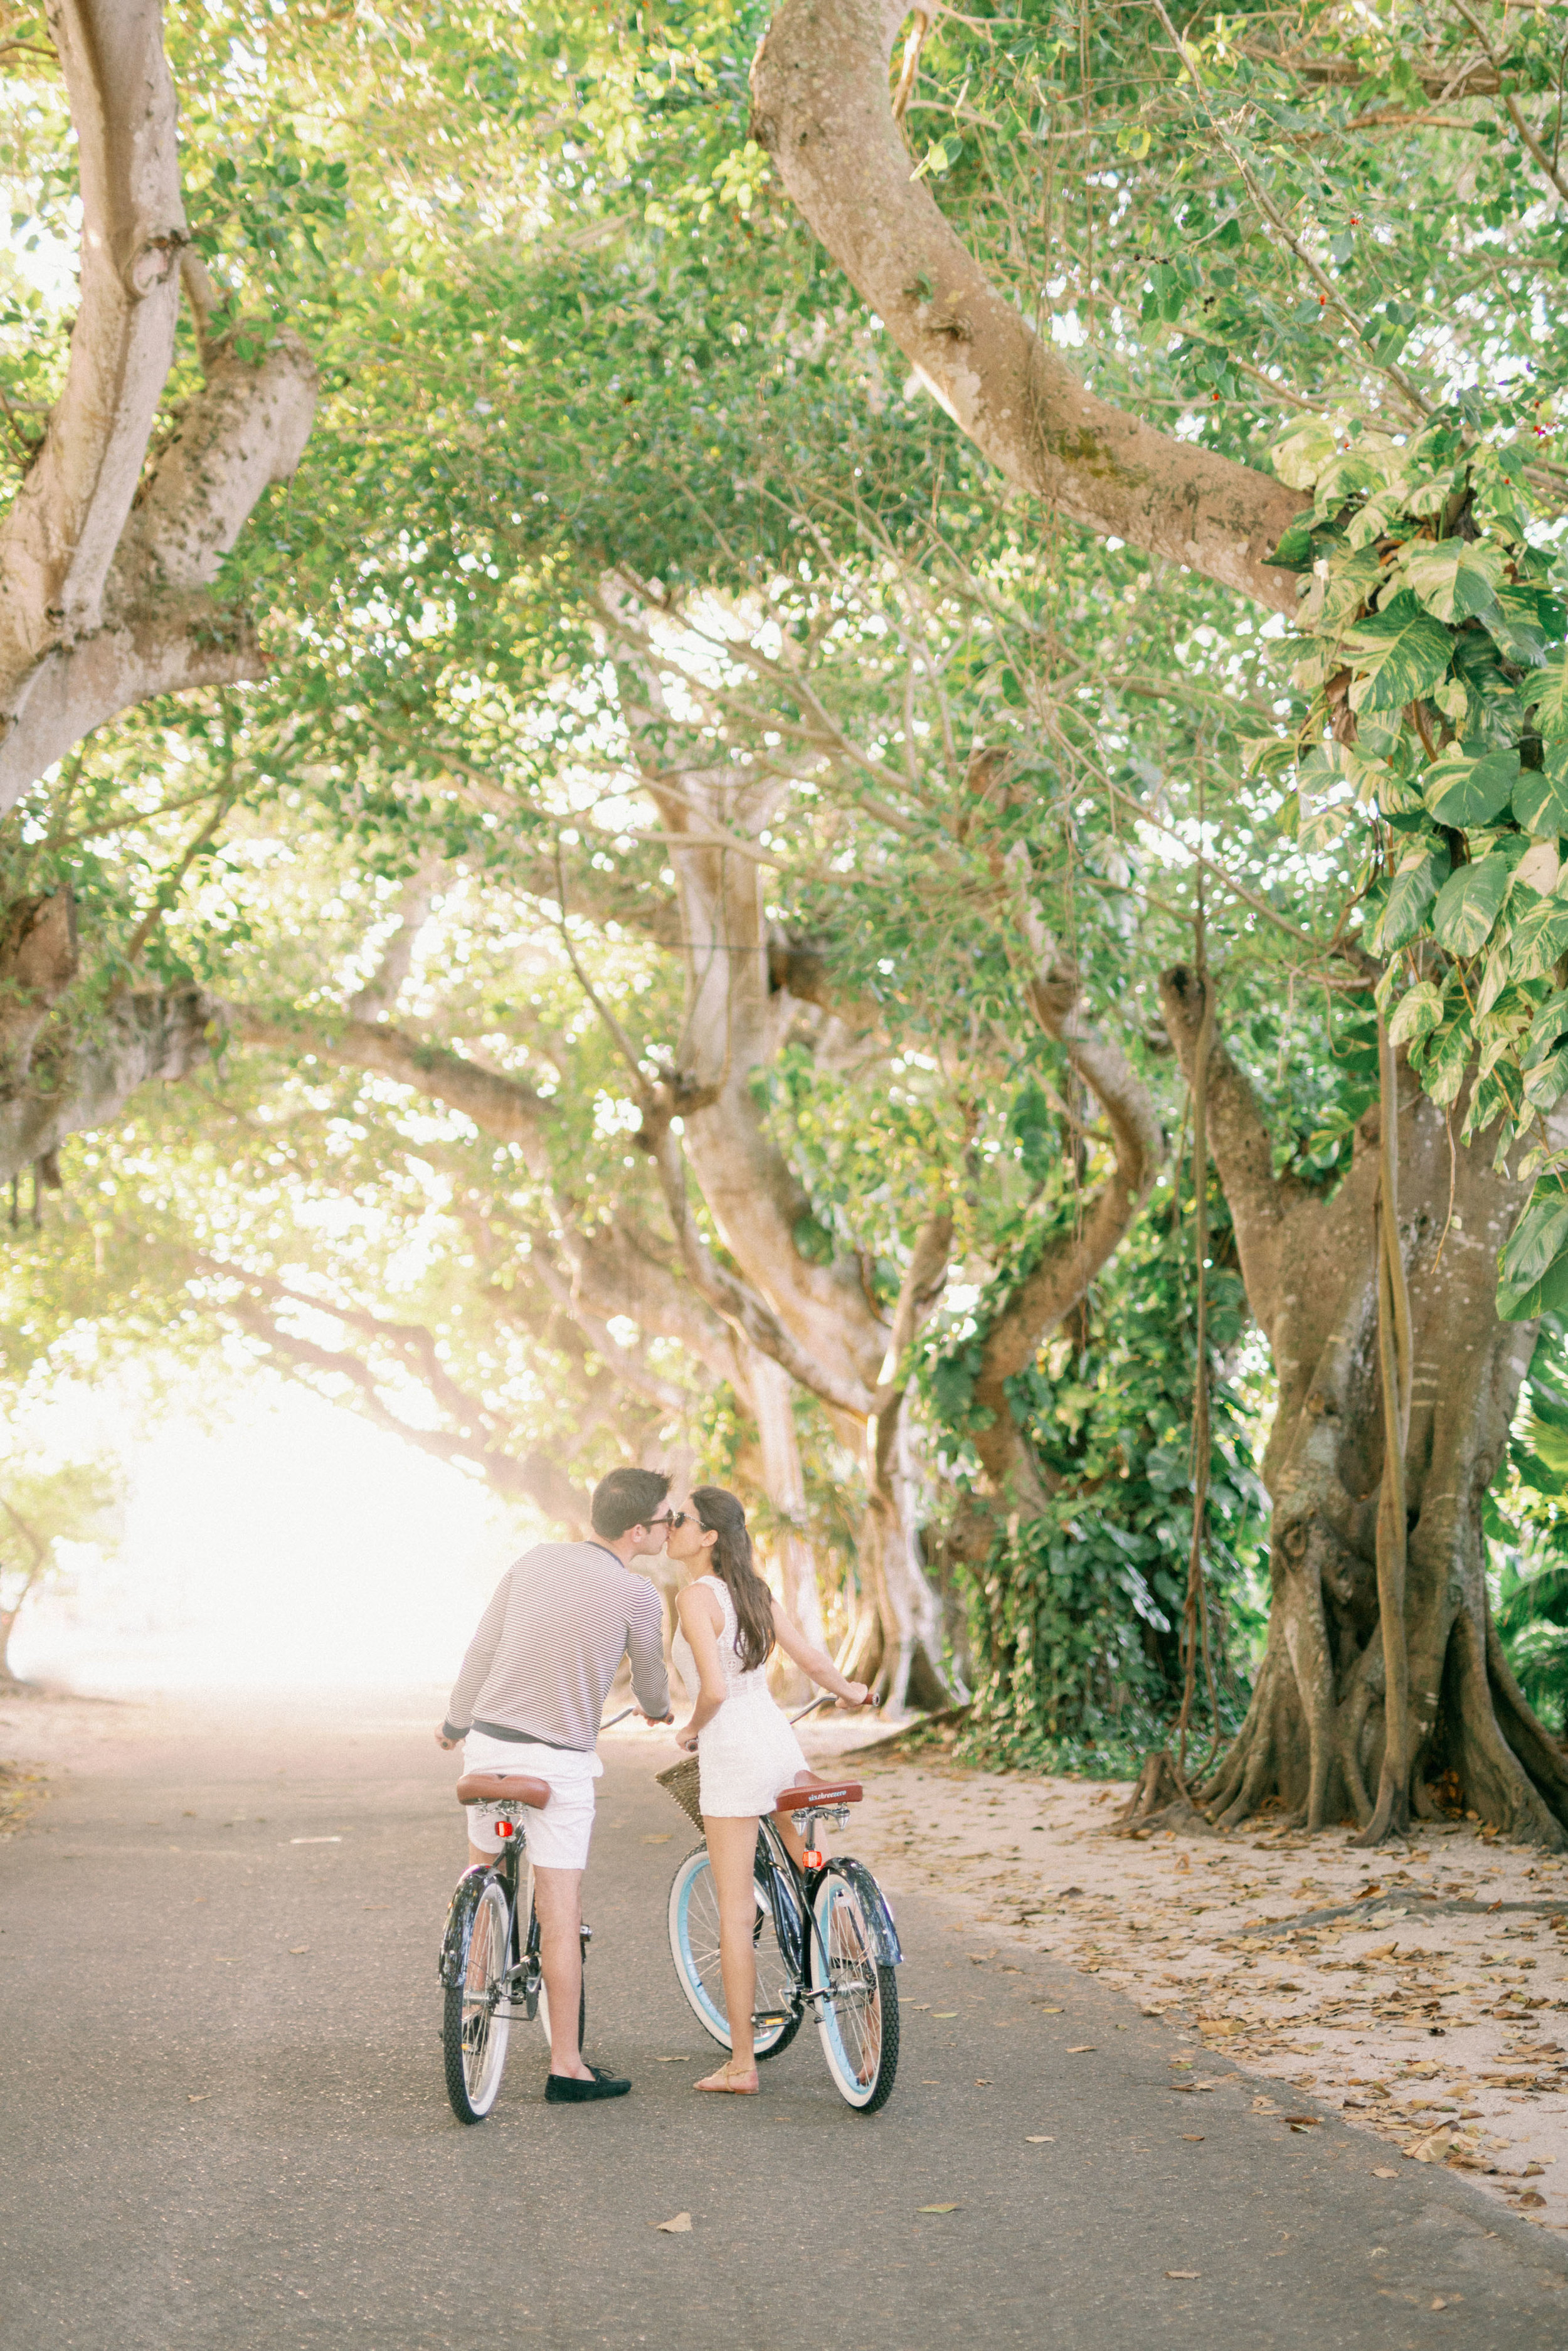 gasparilla island cute engagement session with bikes